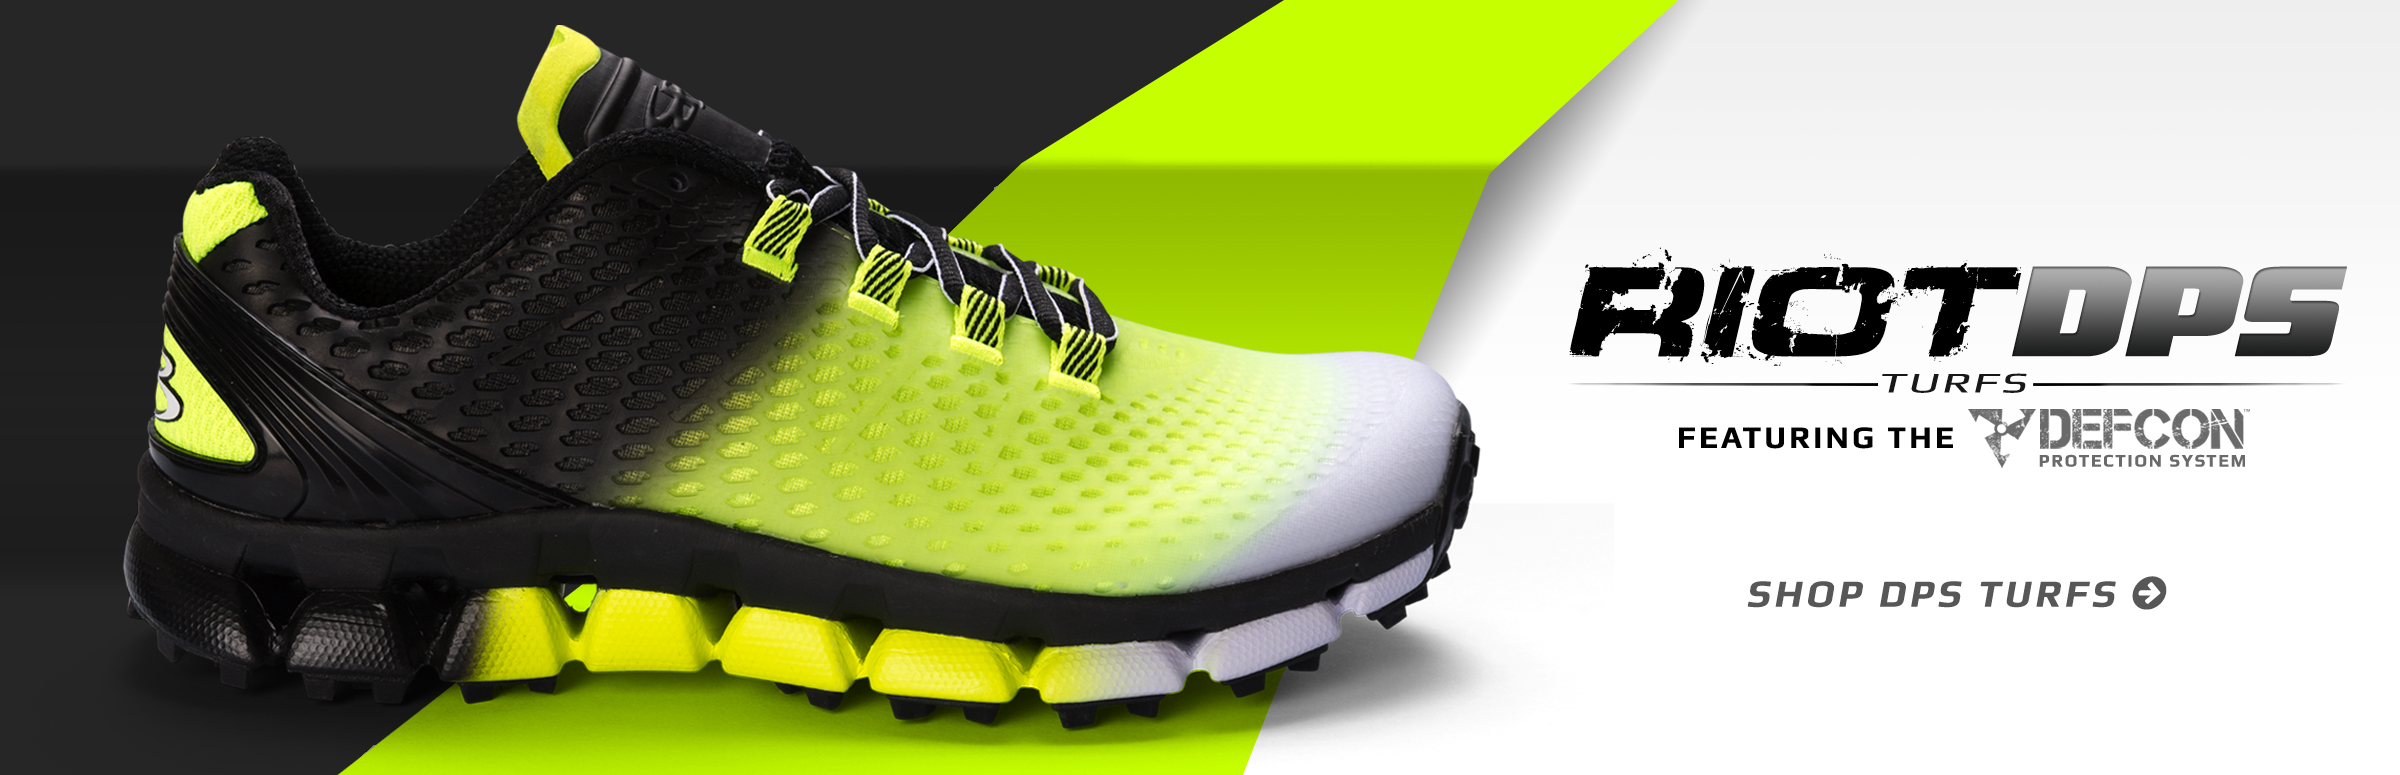 Boombah Shoes Review